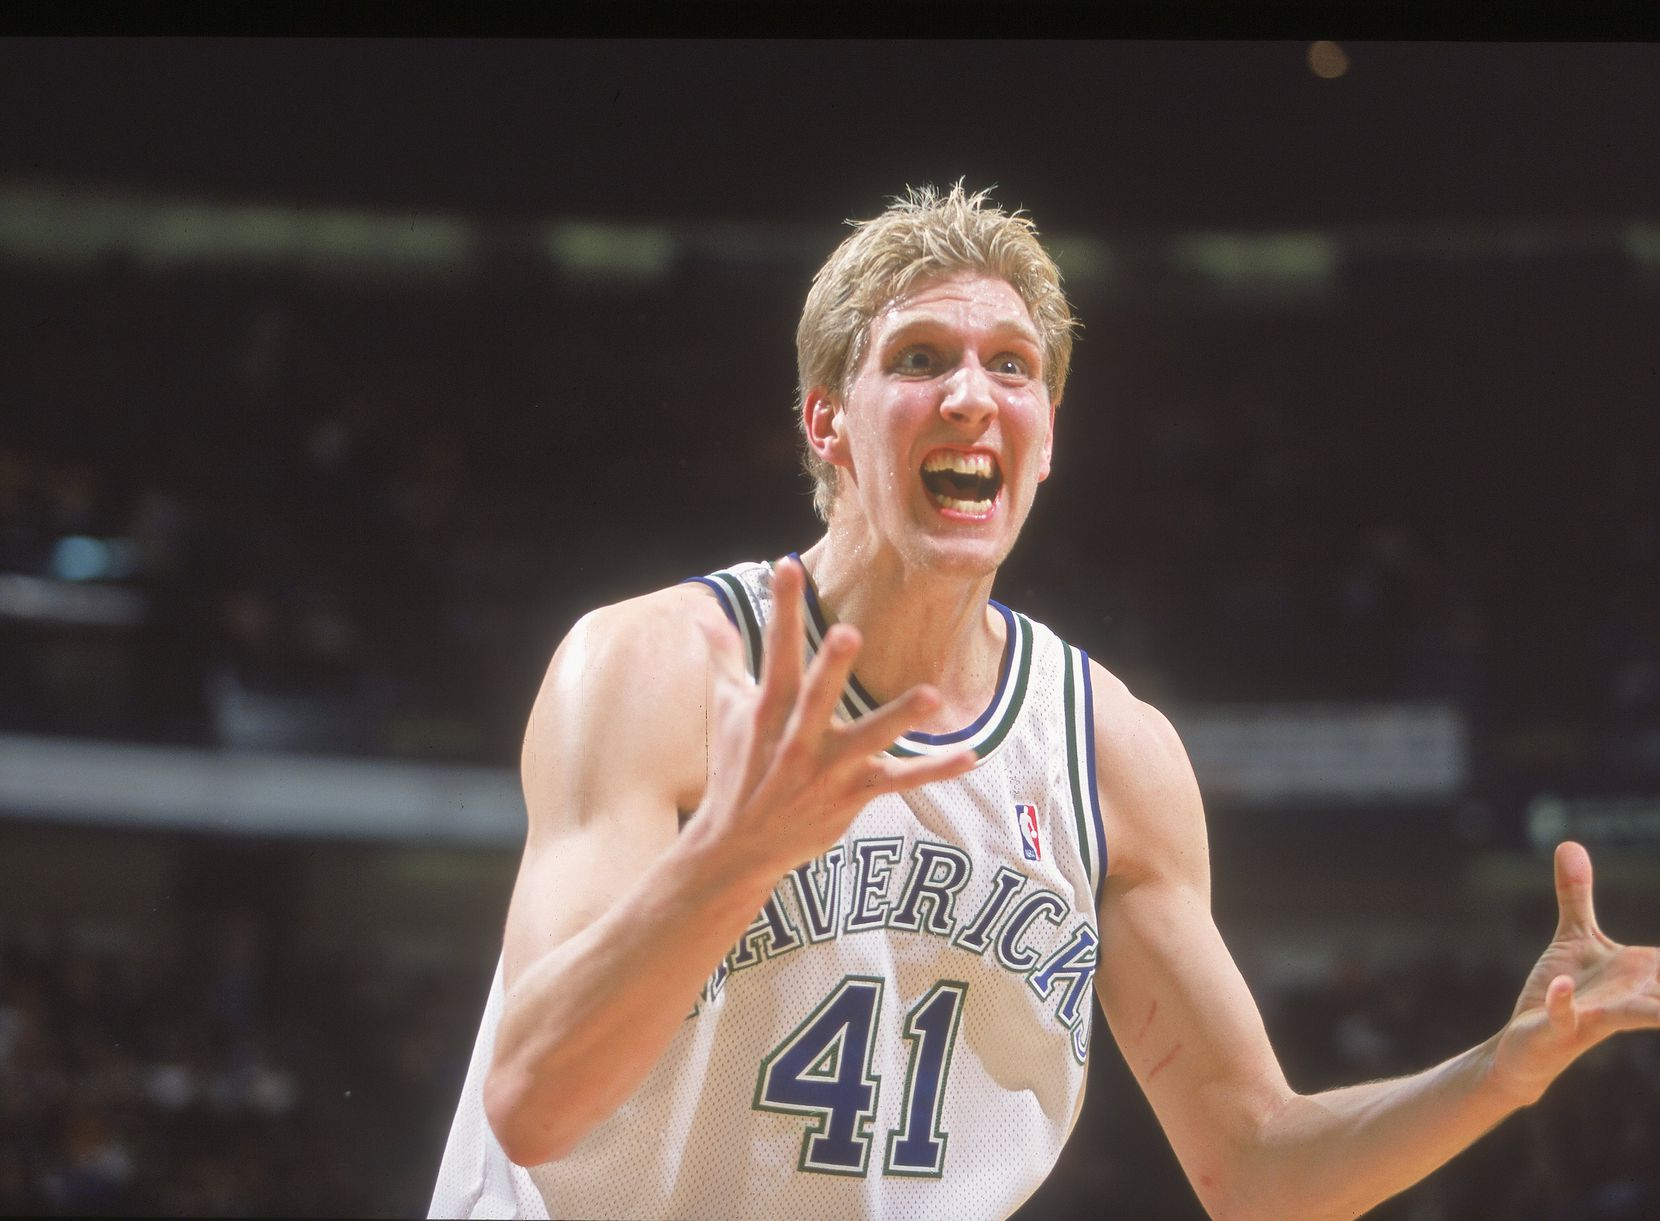 22 Dec 2000:  Dirk Nowitzki #41 of the Dallas Mavericks reacts to the call during the game against the Los Angeles Lakers at the Reunion Arena in Dallas, Texas. The Lakers defeated the Mavericks 108-103.